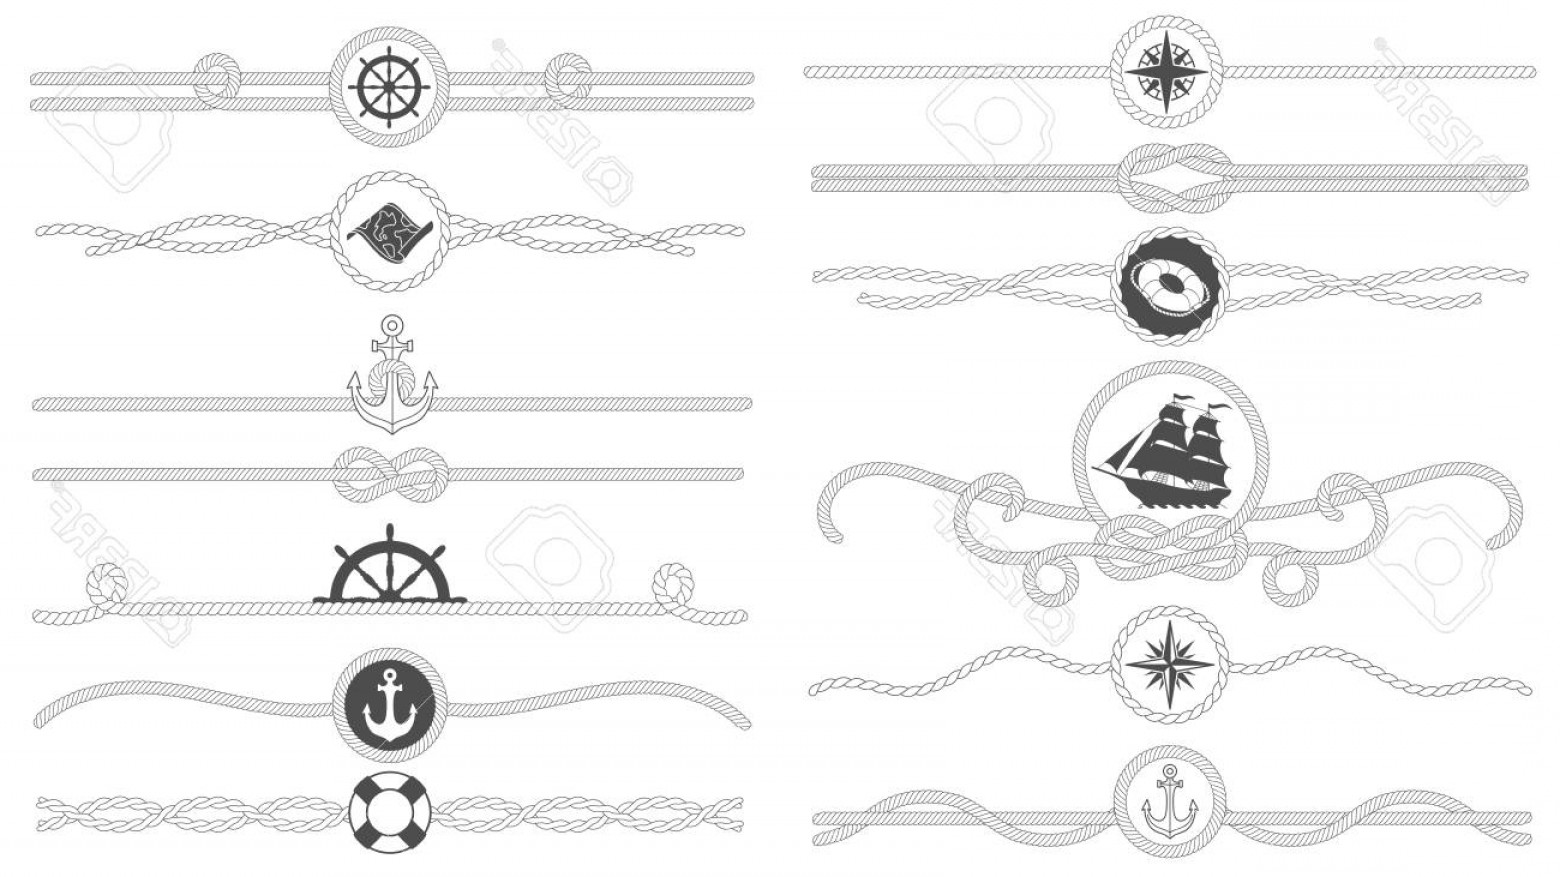 Nautical Text Divider Vector: Photostock Vector Nautical Rope Border Nautical Tied Ropes Line Sea Ship Anchor Divider And Retro Marine Decor Borders